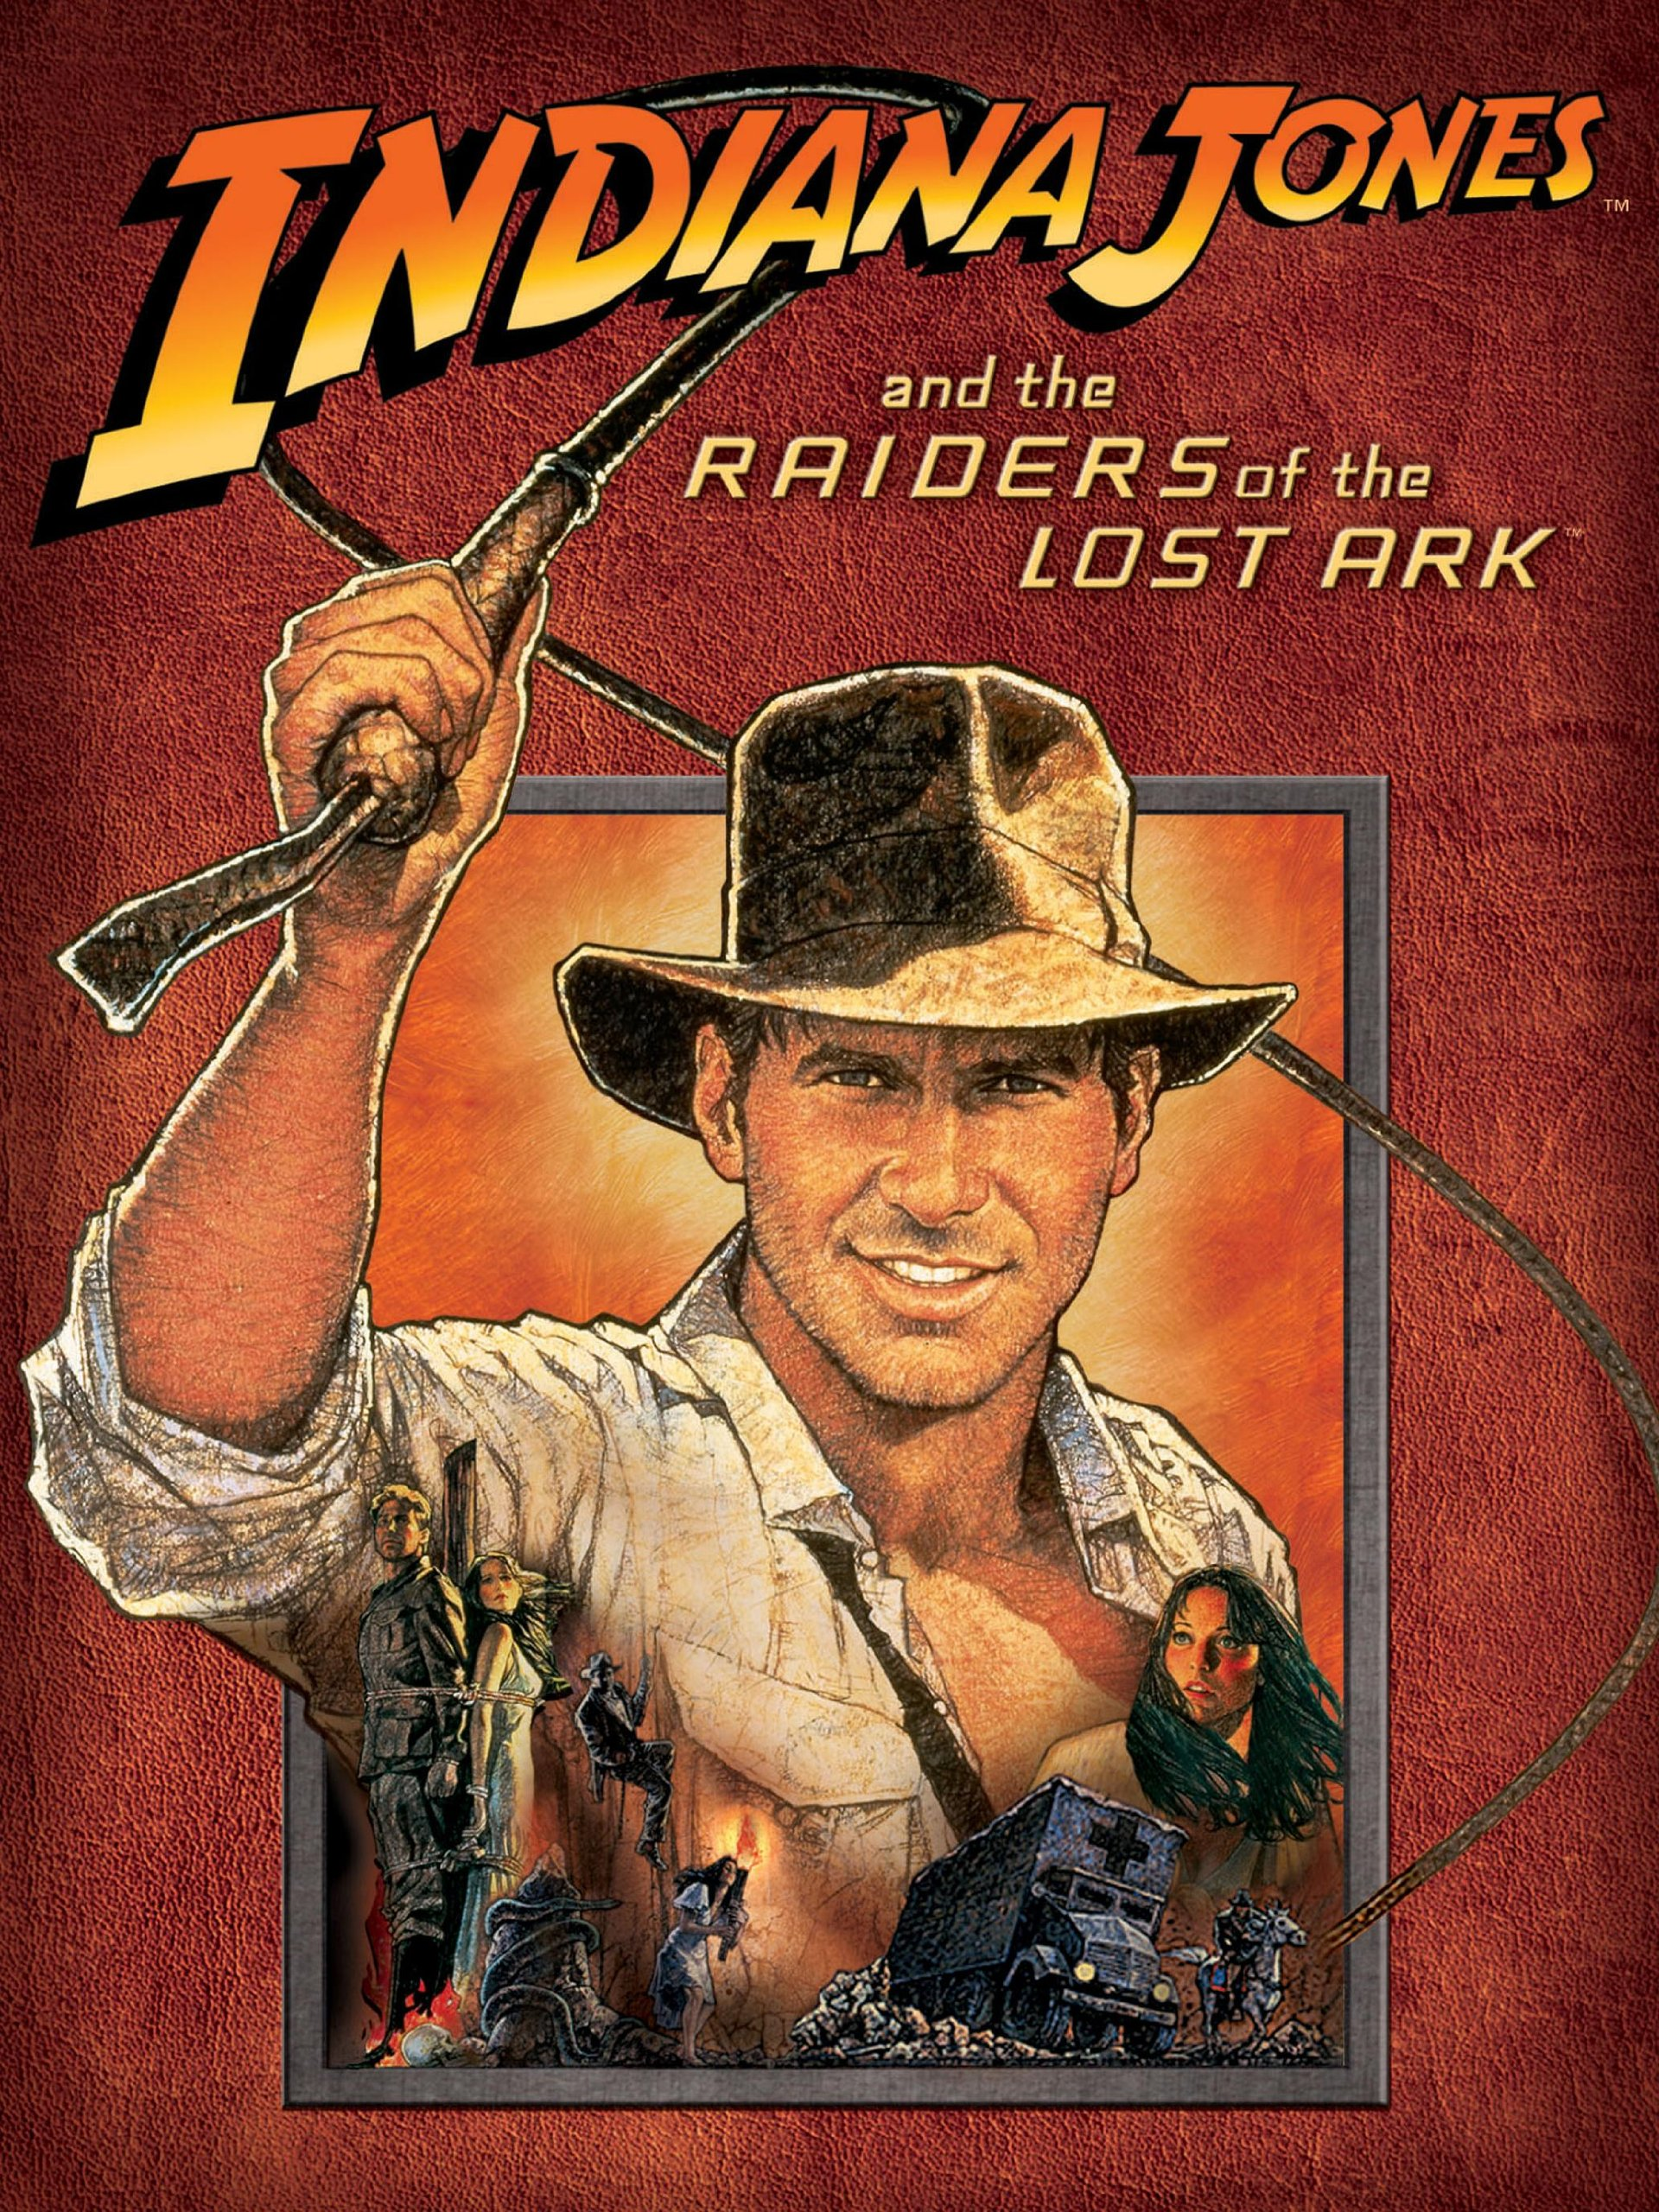 514ae58ac63 Amazon.co.uk: Watch Indiana Jones and the Raiders Of The Lost Ark   Prime  Video